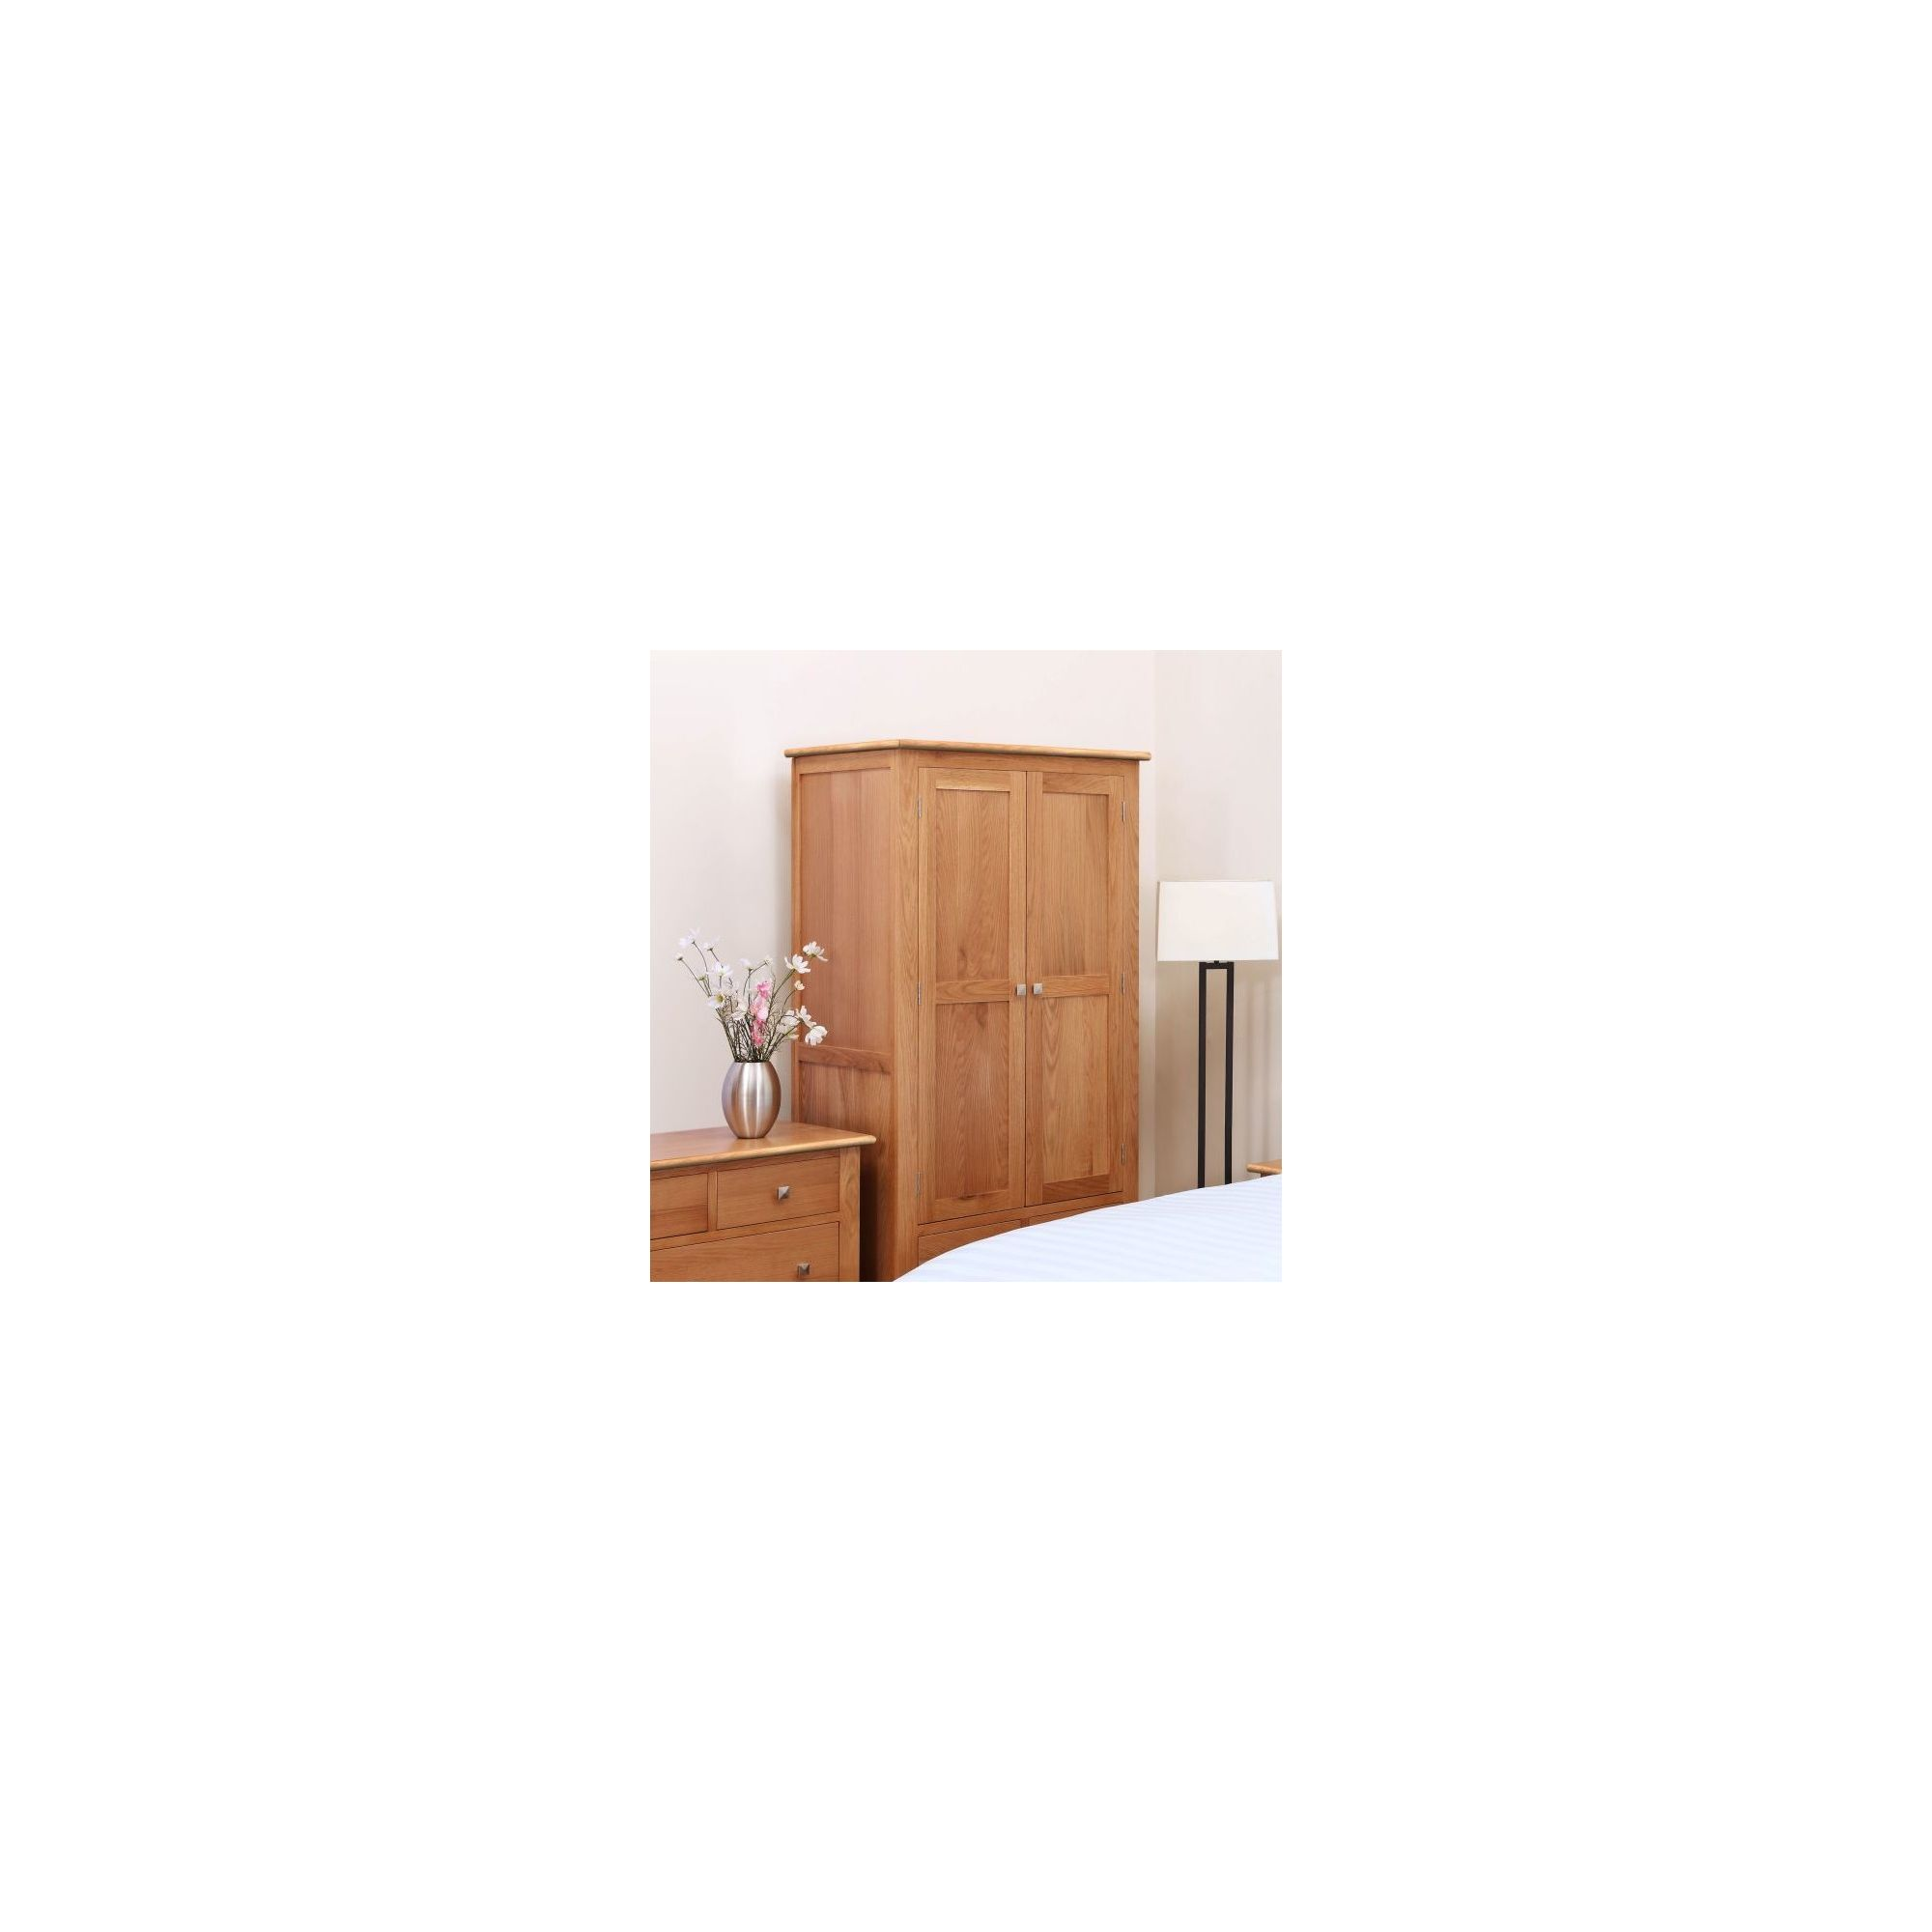 Kelburn Furniture Pitkin Oak Wardrobe at Tesco Direct